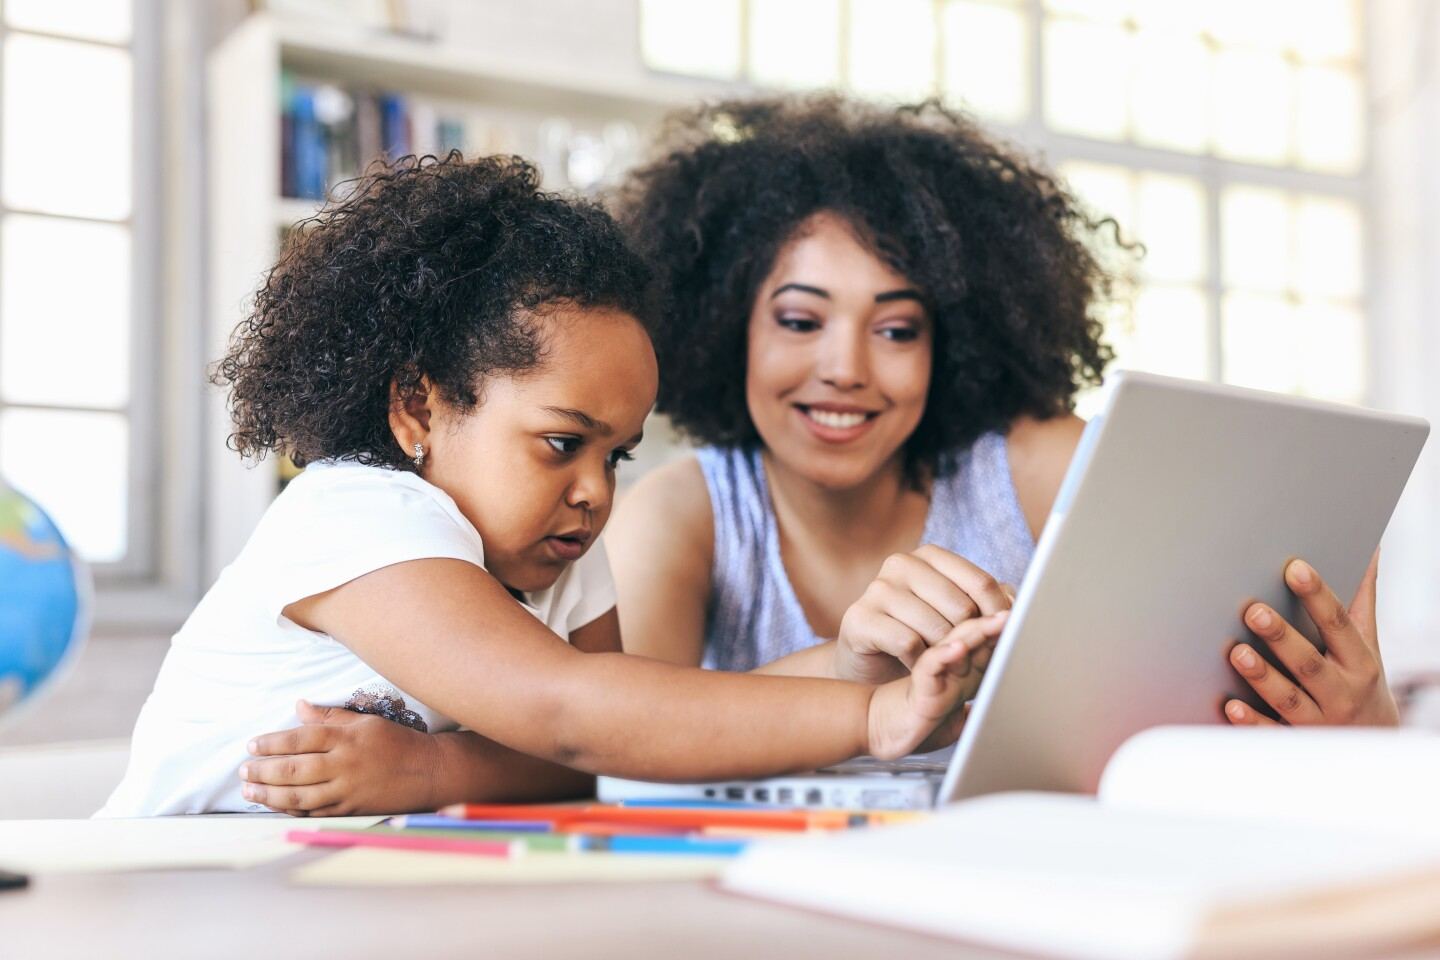 A young mother and child work on a computer together. iStock